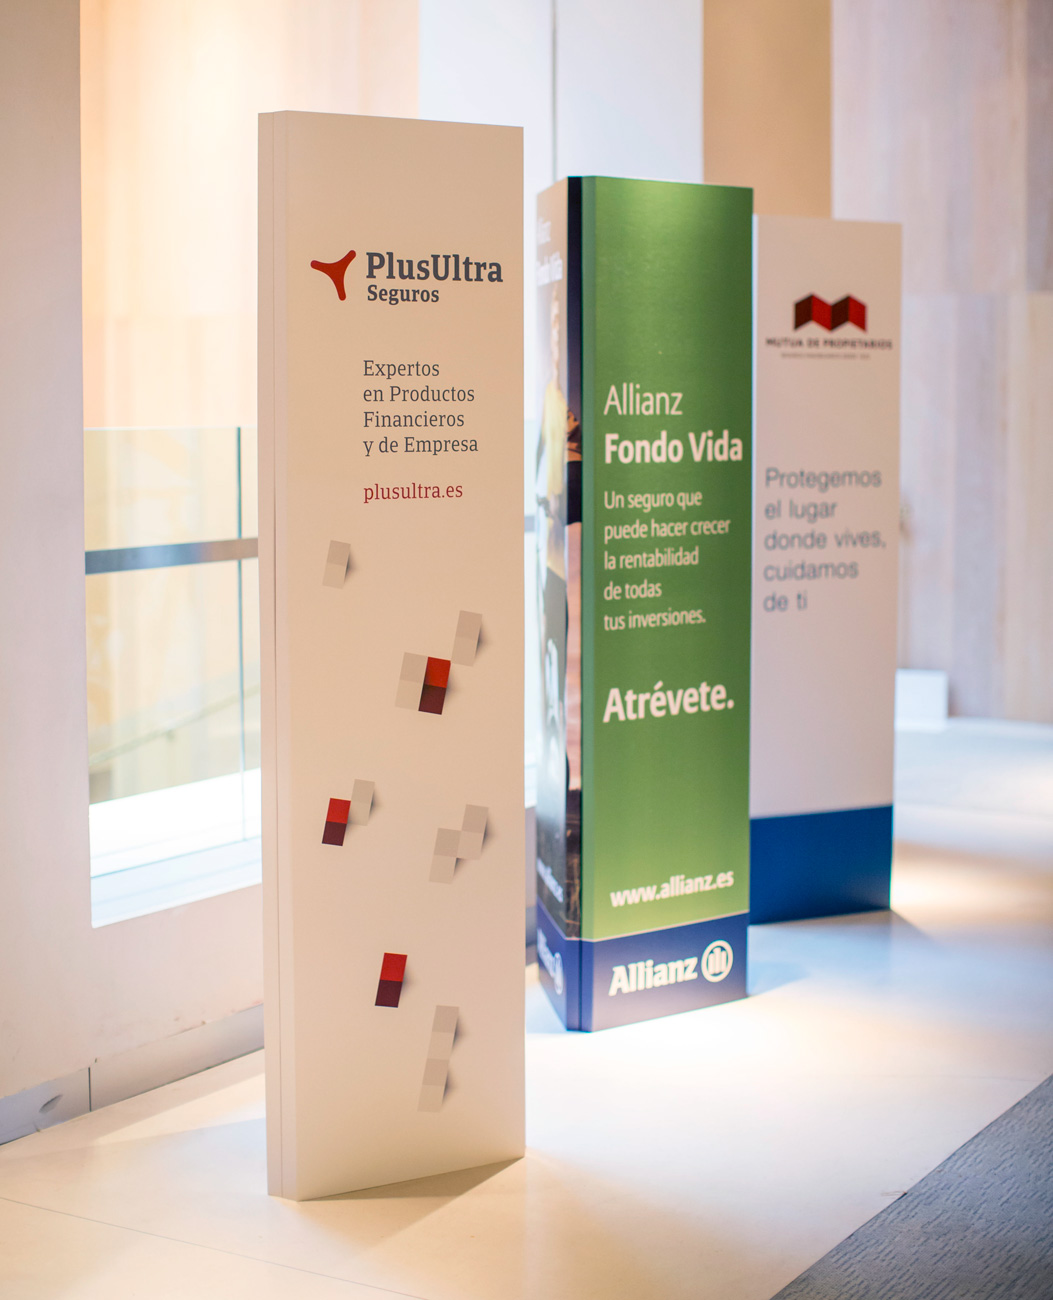 totem-banner-carton-e2000-decoracion-evento-cartonlab-1